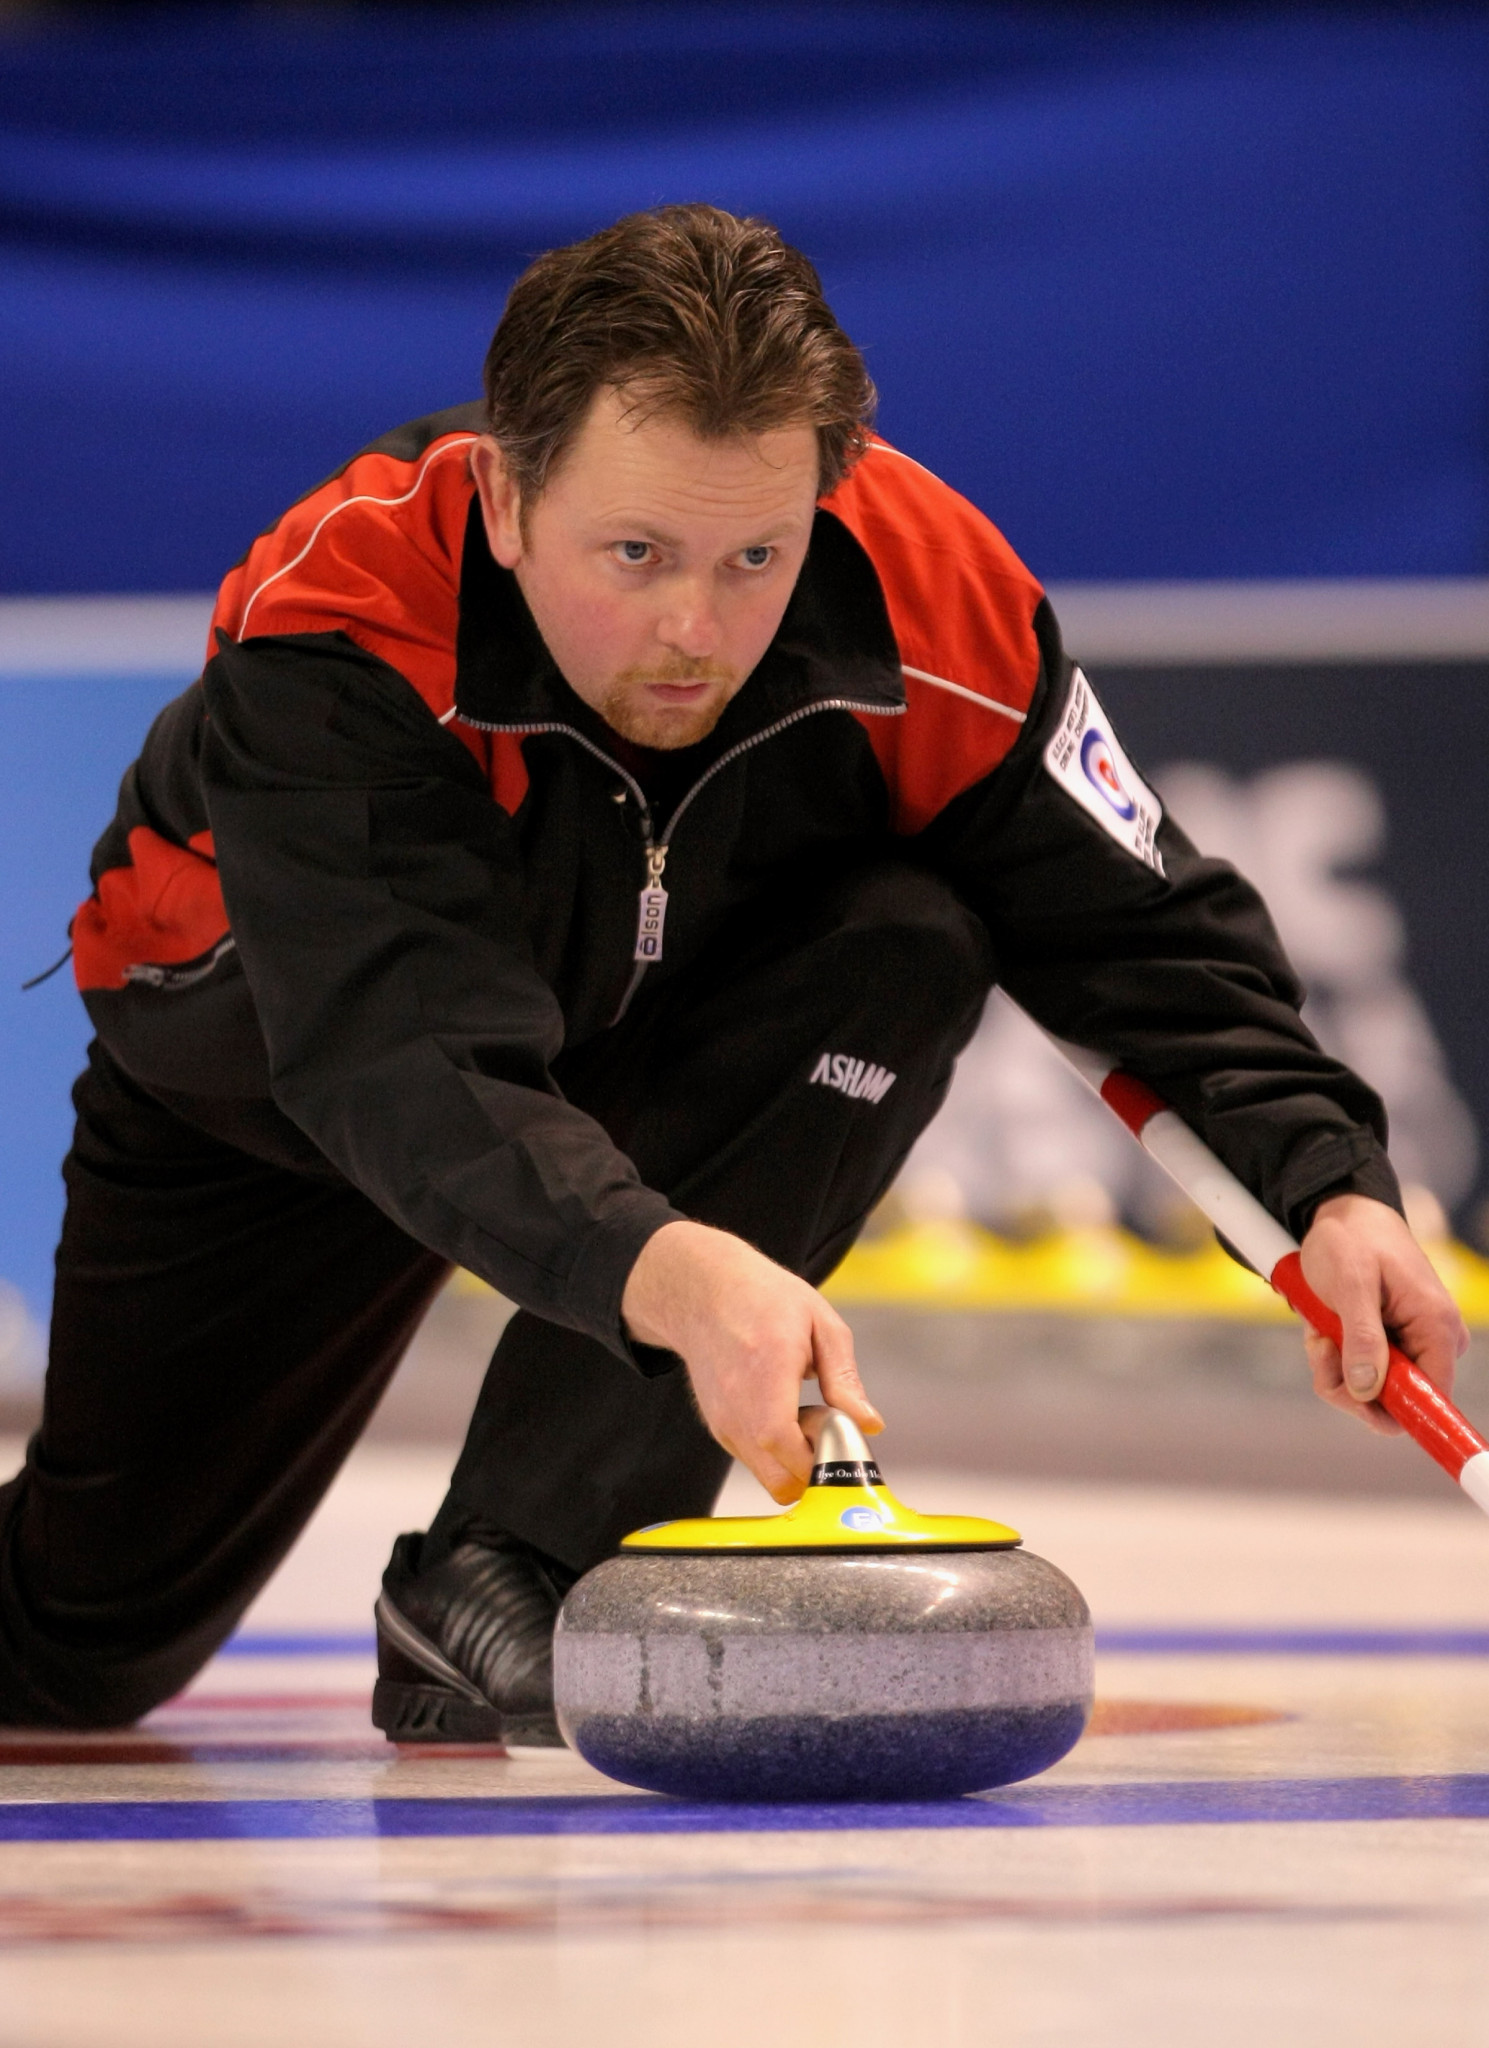 Birr and McCormick to go head-to-head in a shoot-out to see who will face Shuster at US Olympic Curling Trials